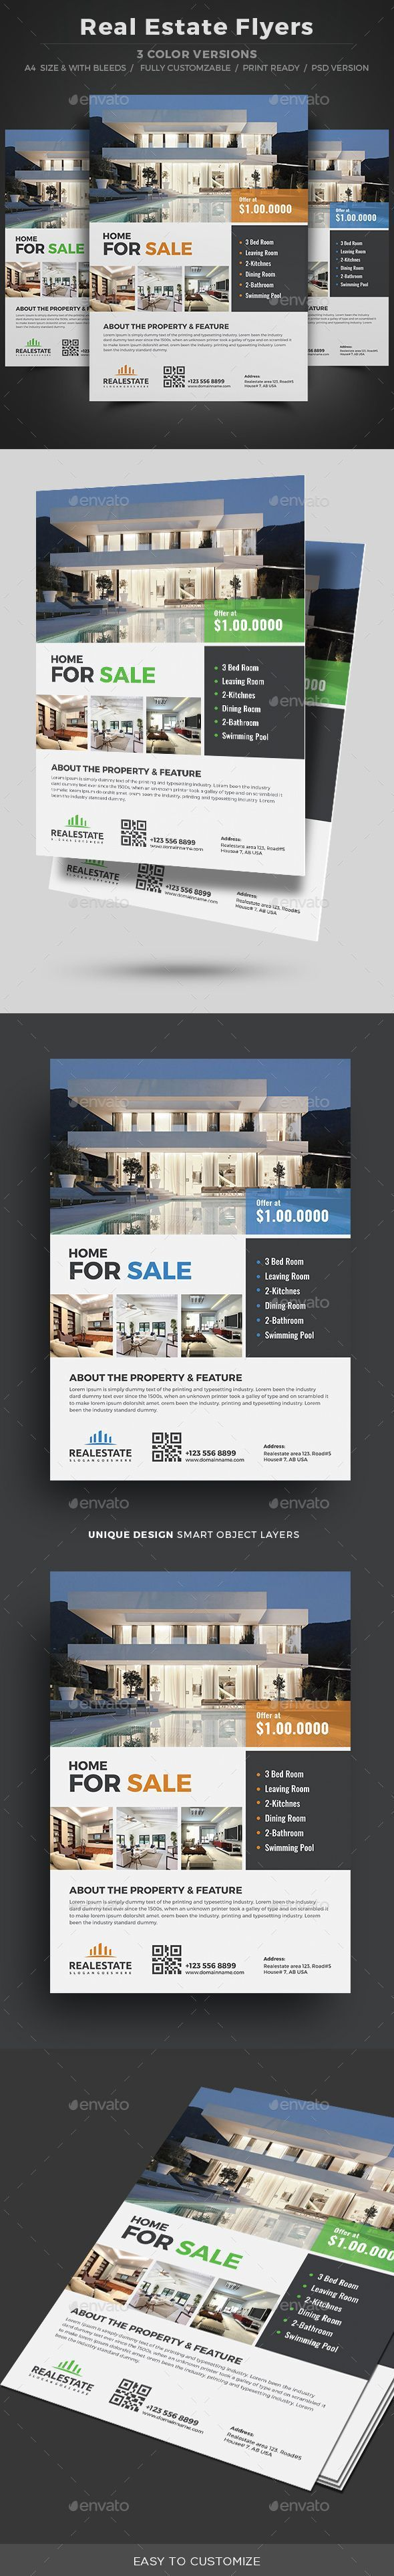 Real Estate Template%0A Real Estate Flyer Template PSD  realestatebranding